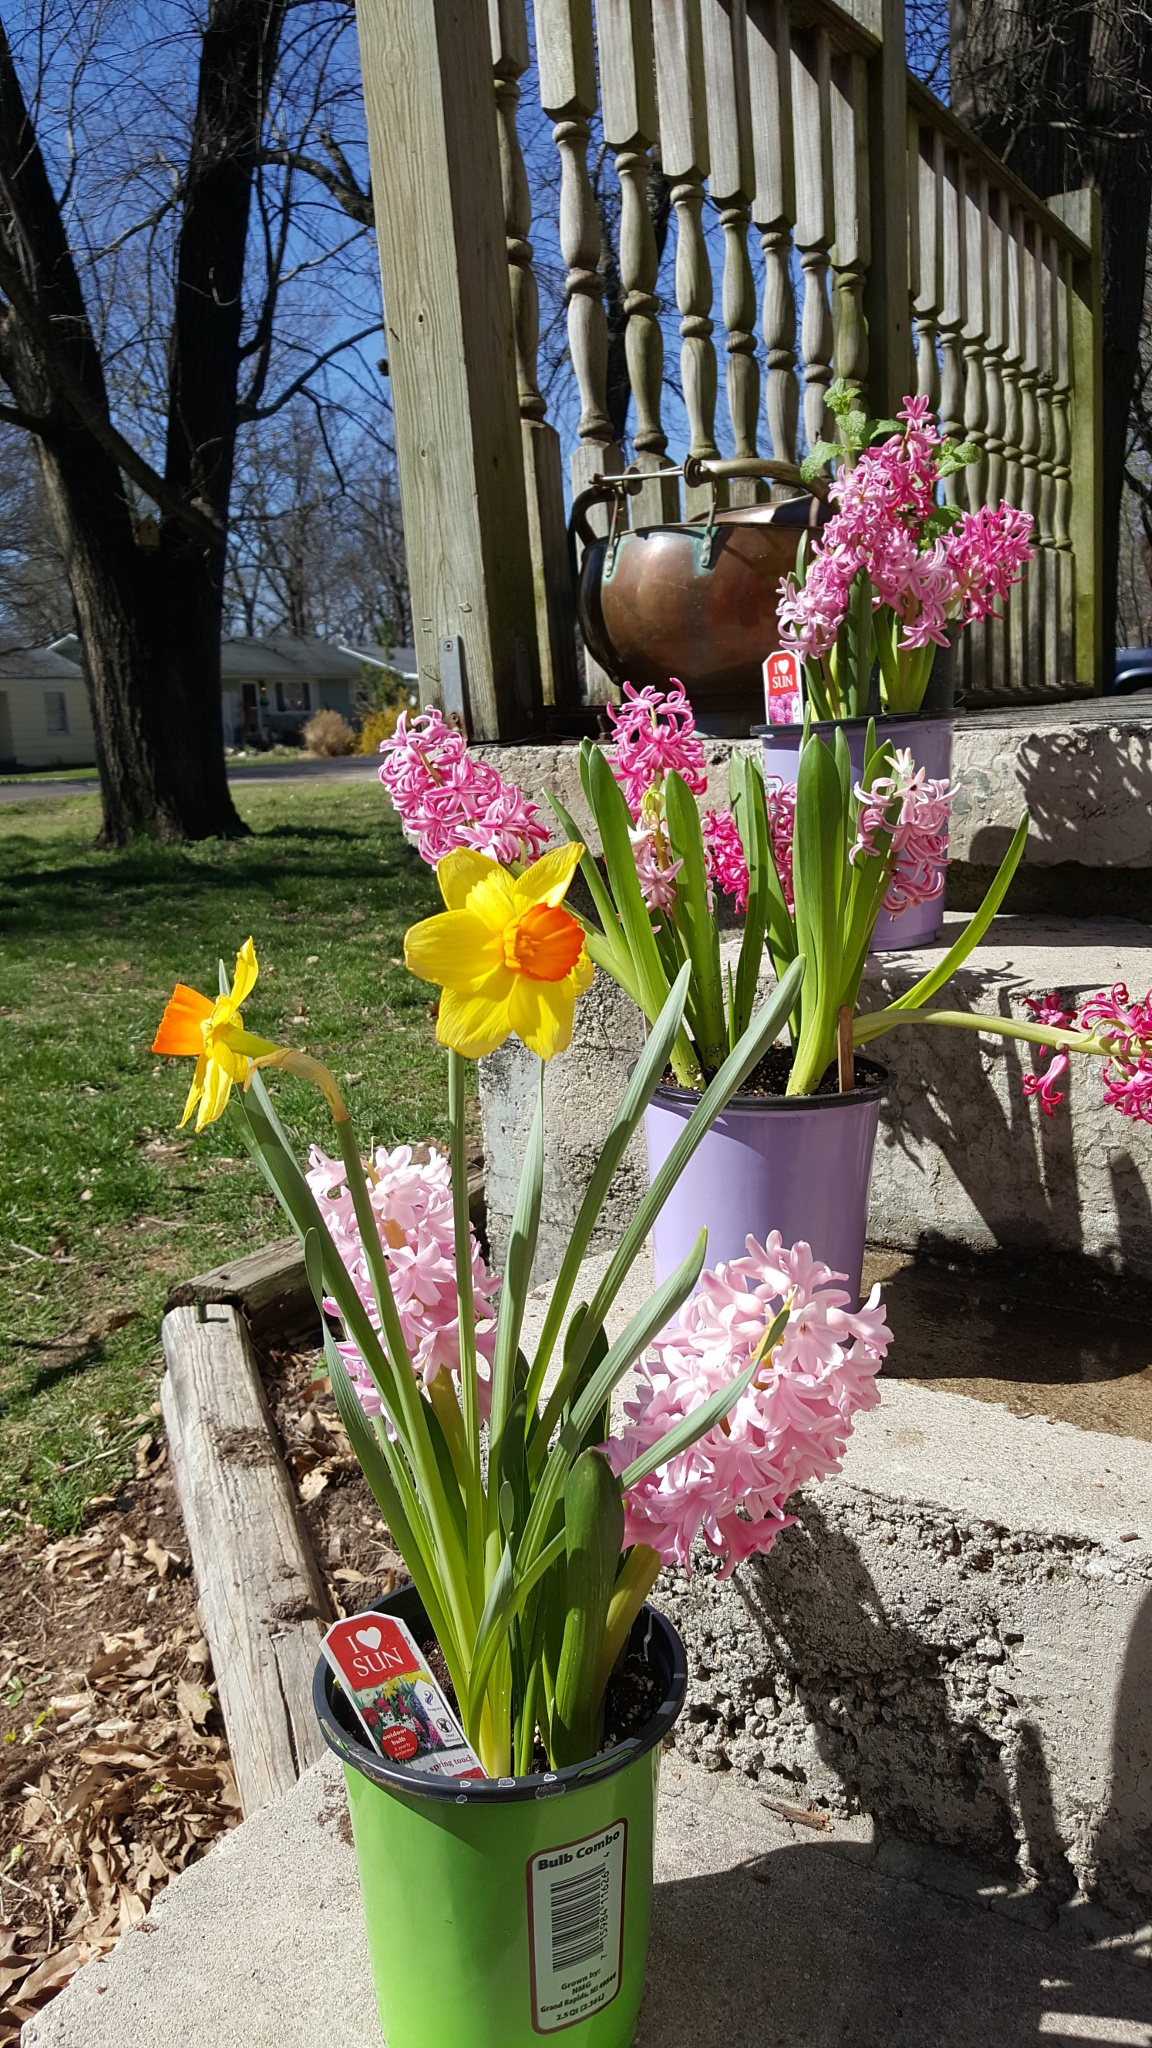 God bless happy spring by Sheila Hyden